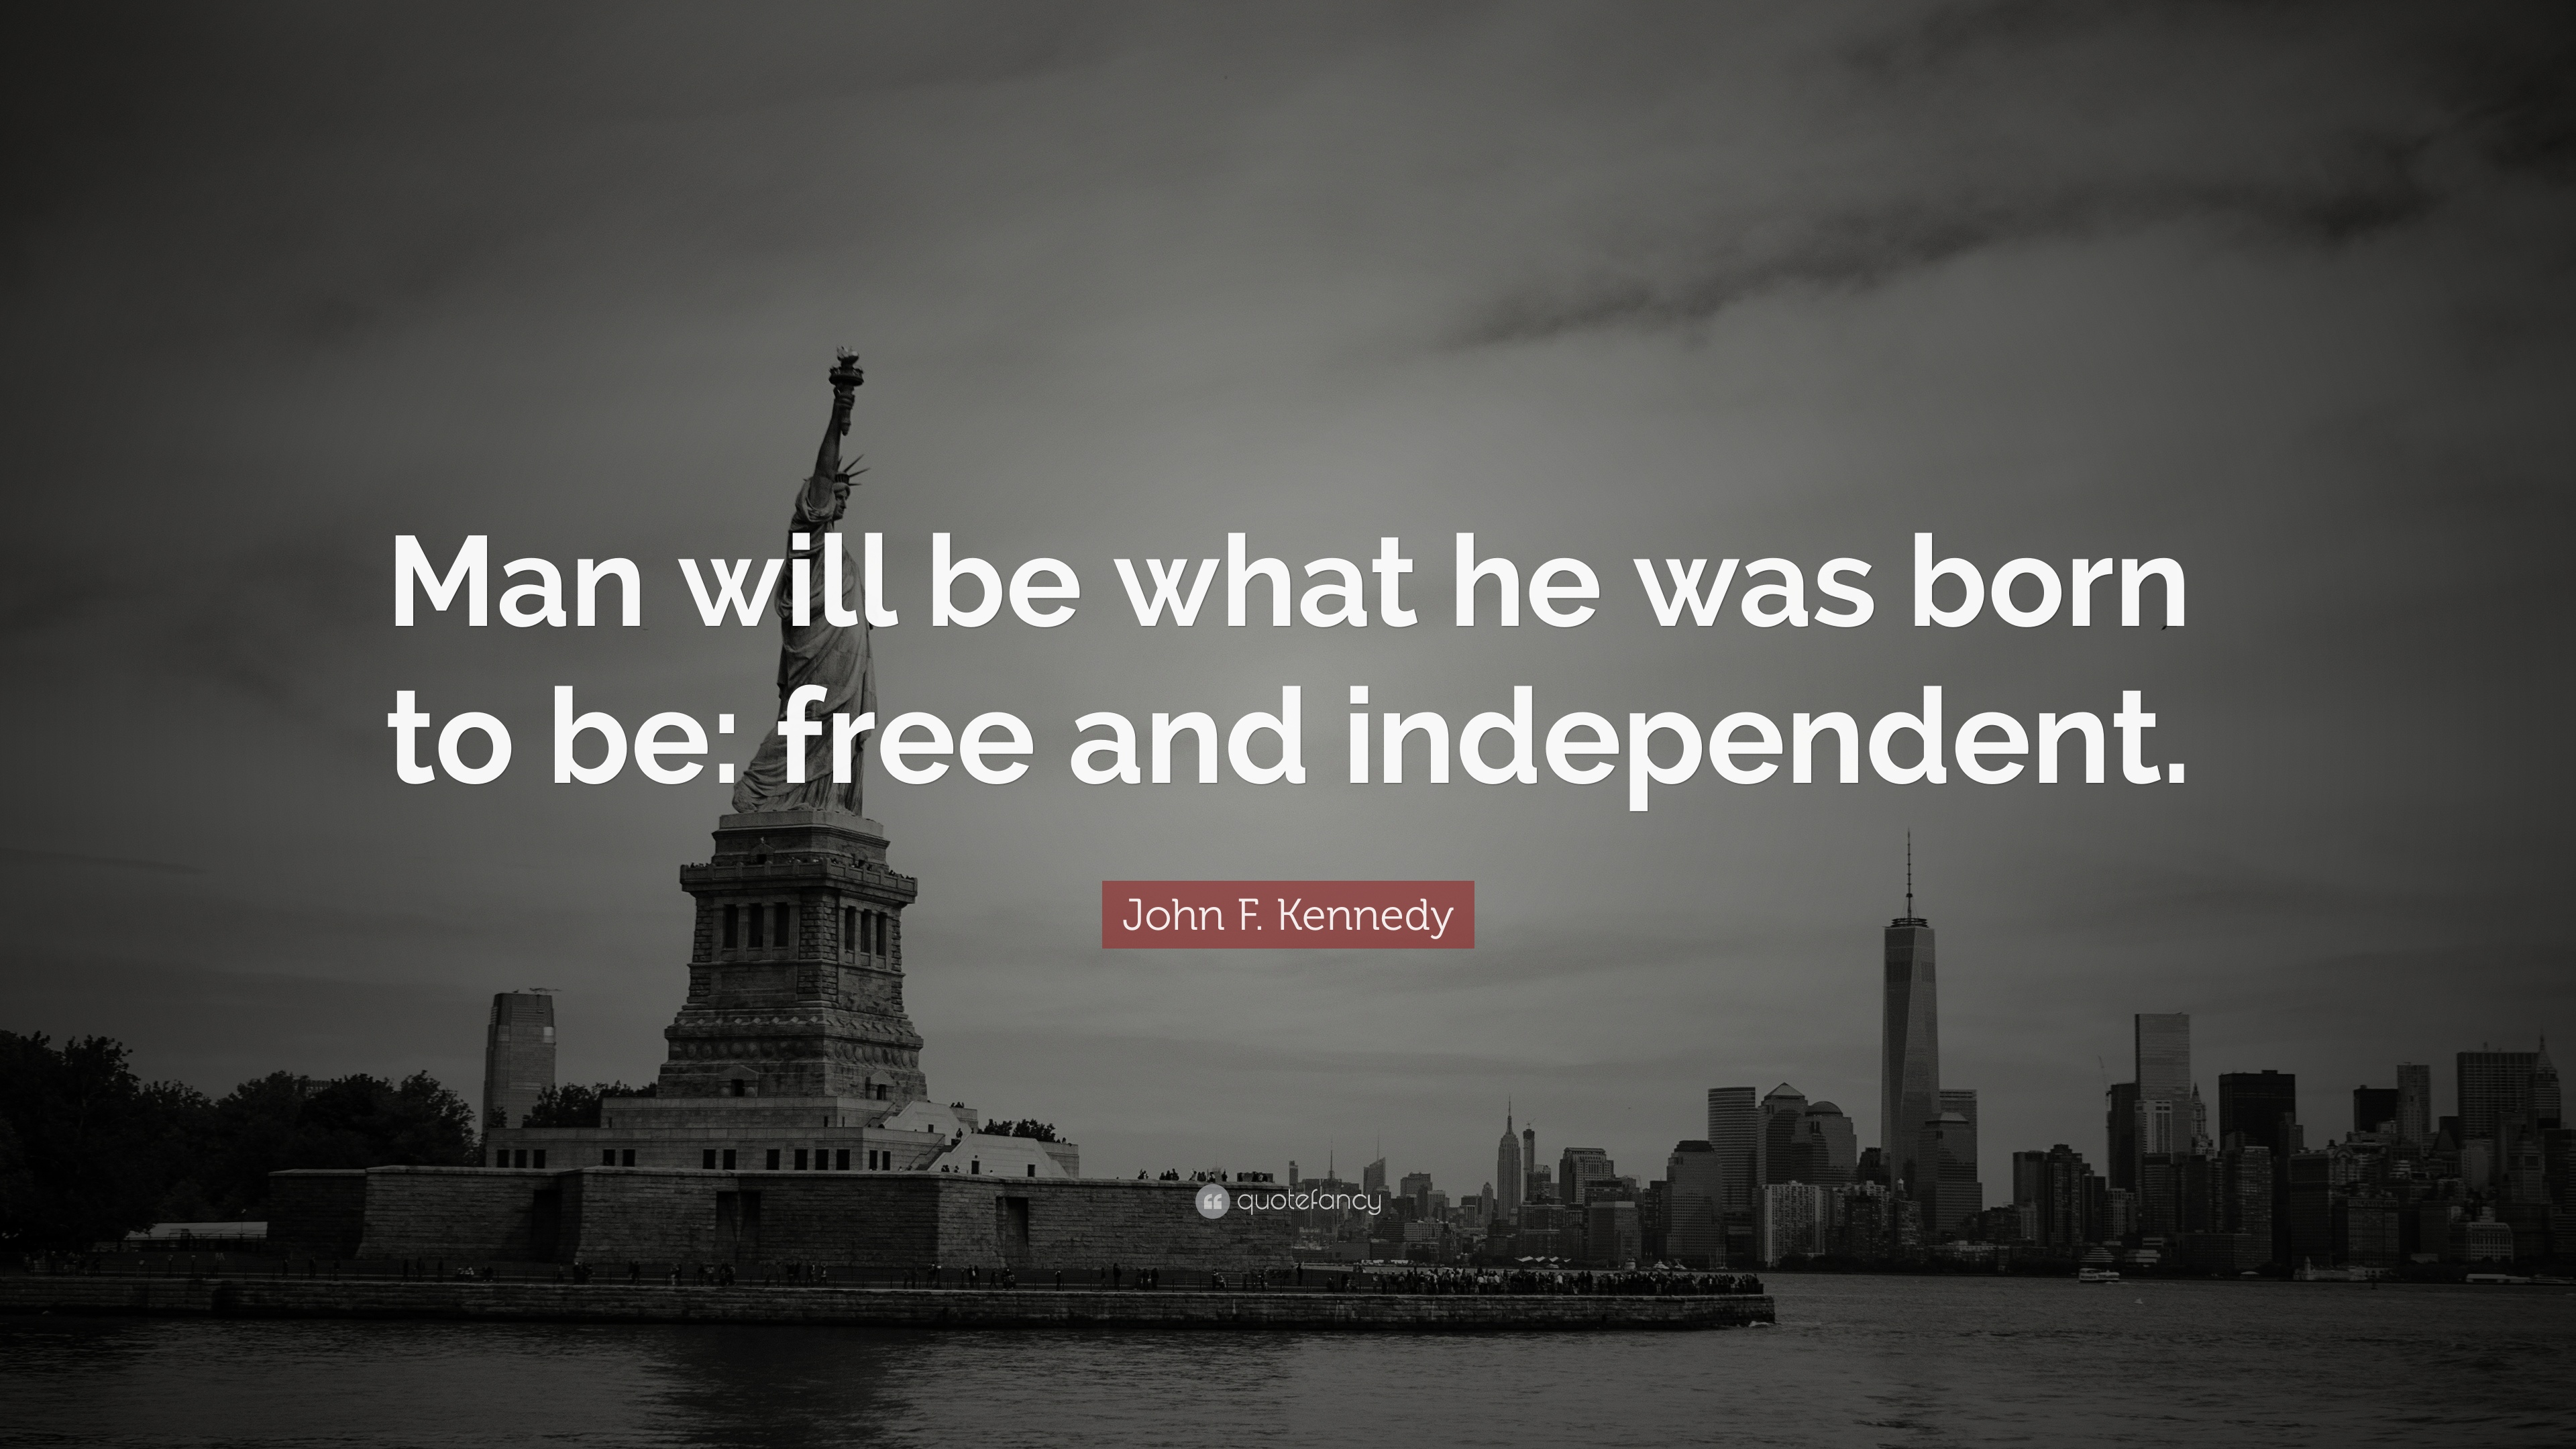 john f kennedy quote wallpapers - photo #4